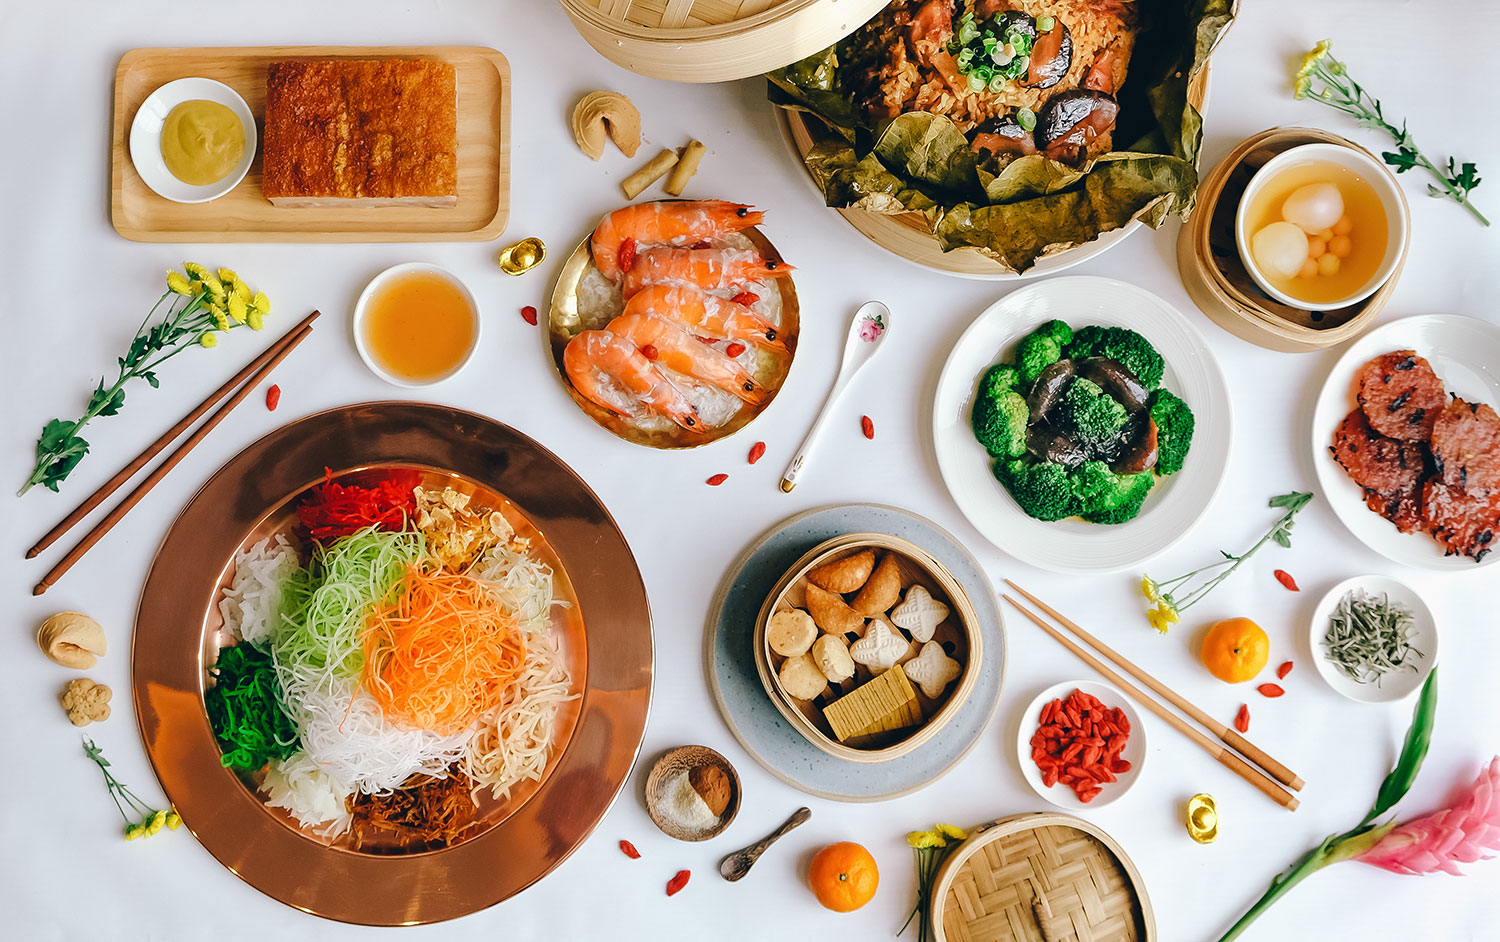 Reunite With Family And Friends This Lunar New Year At Courtyard By Marriott Singapore Novena